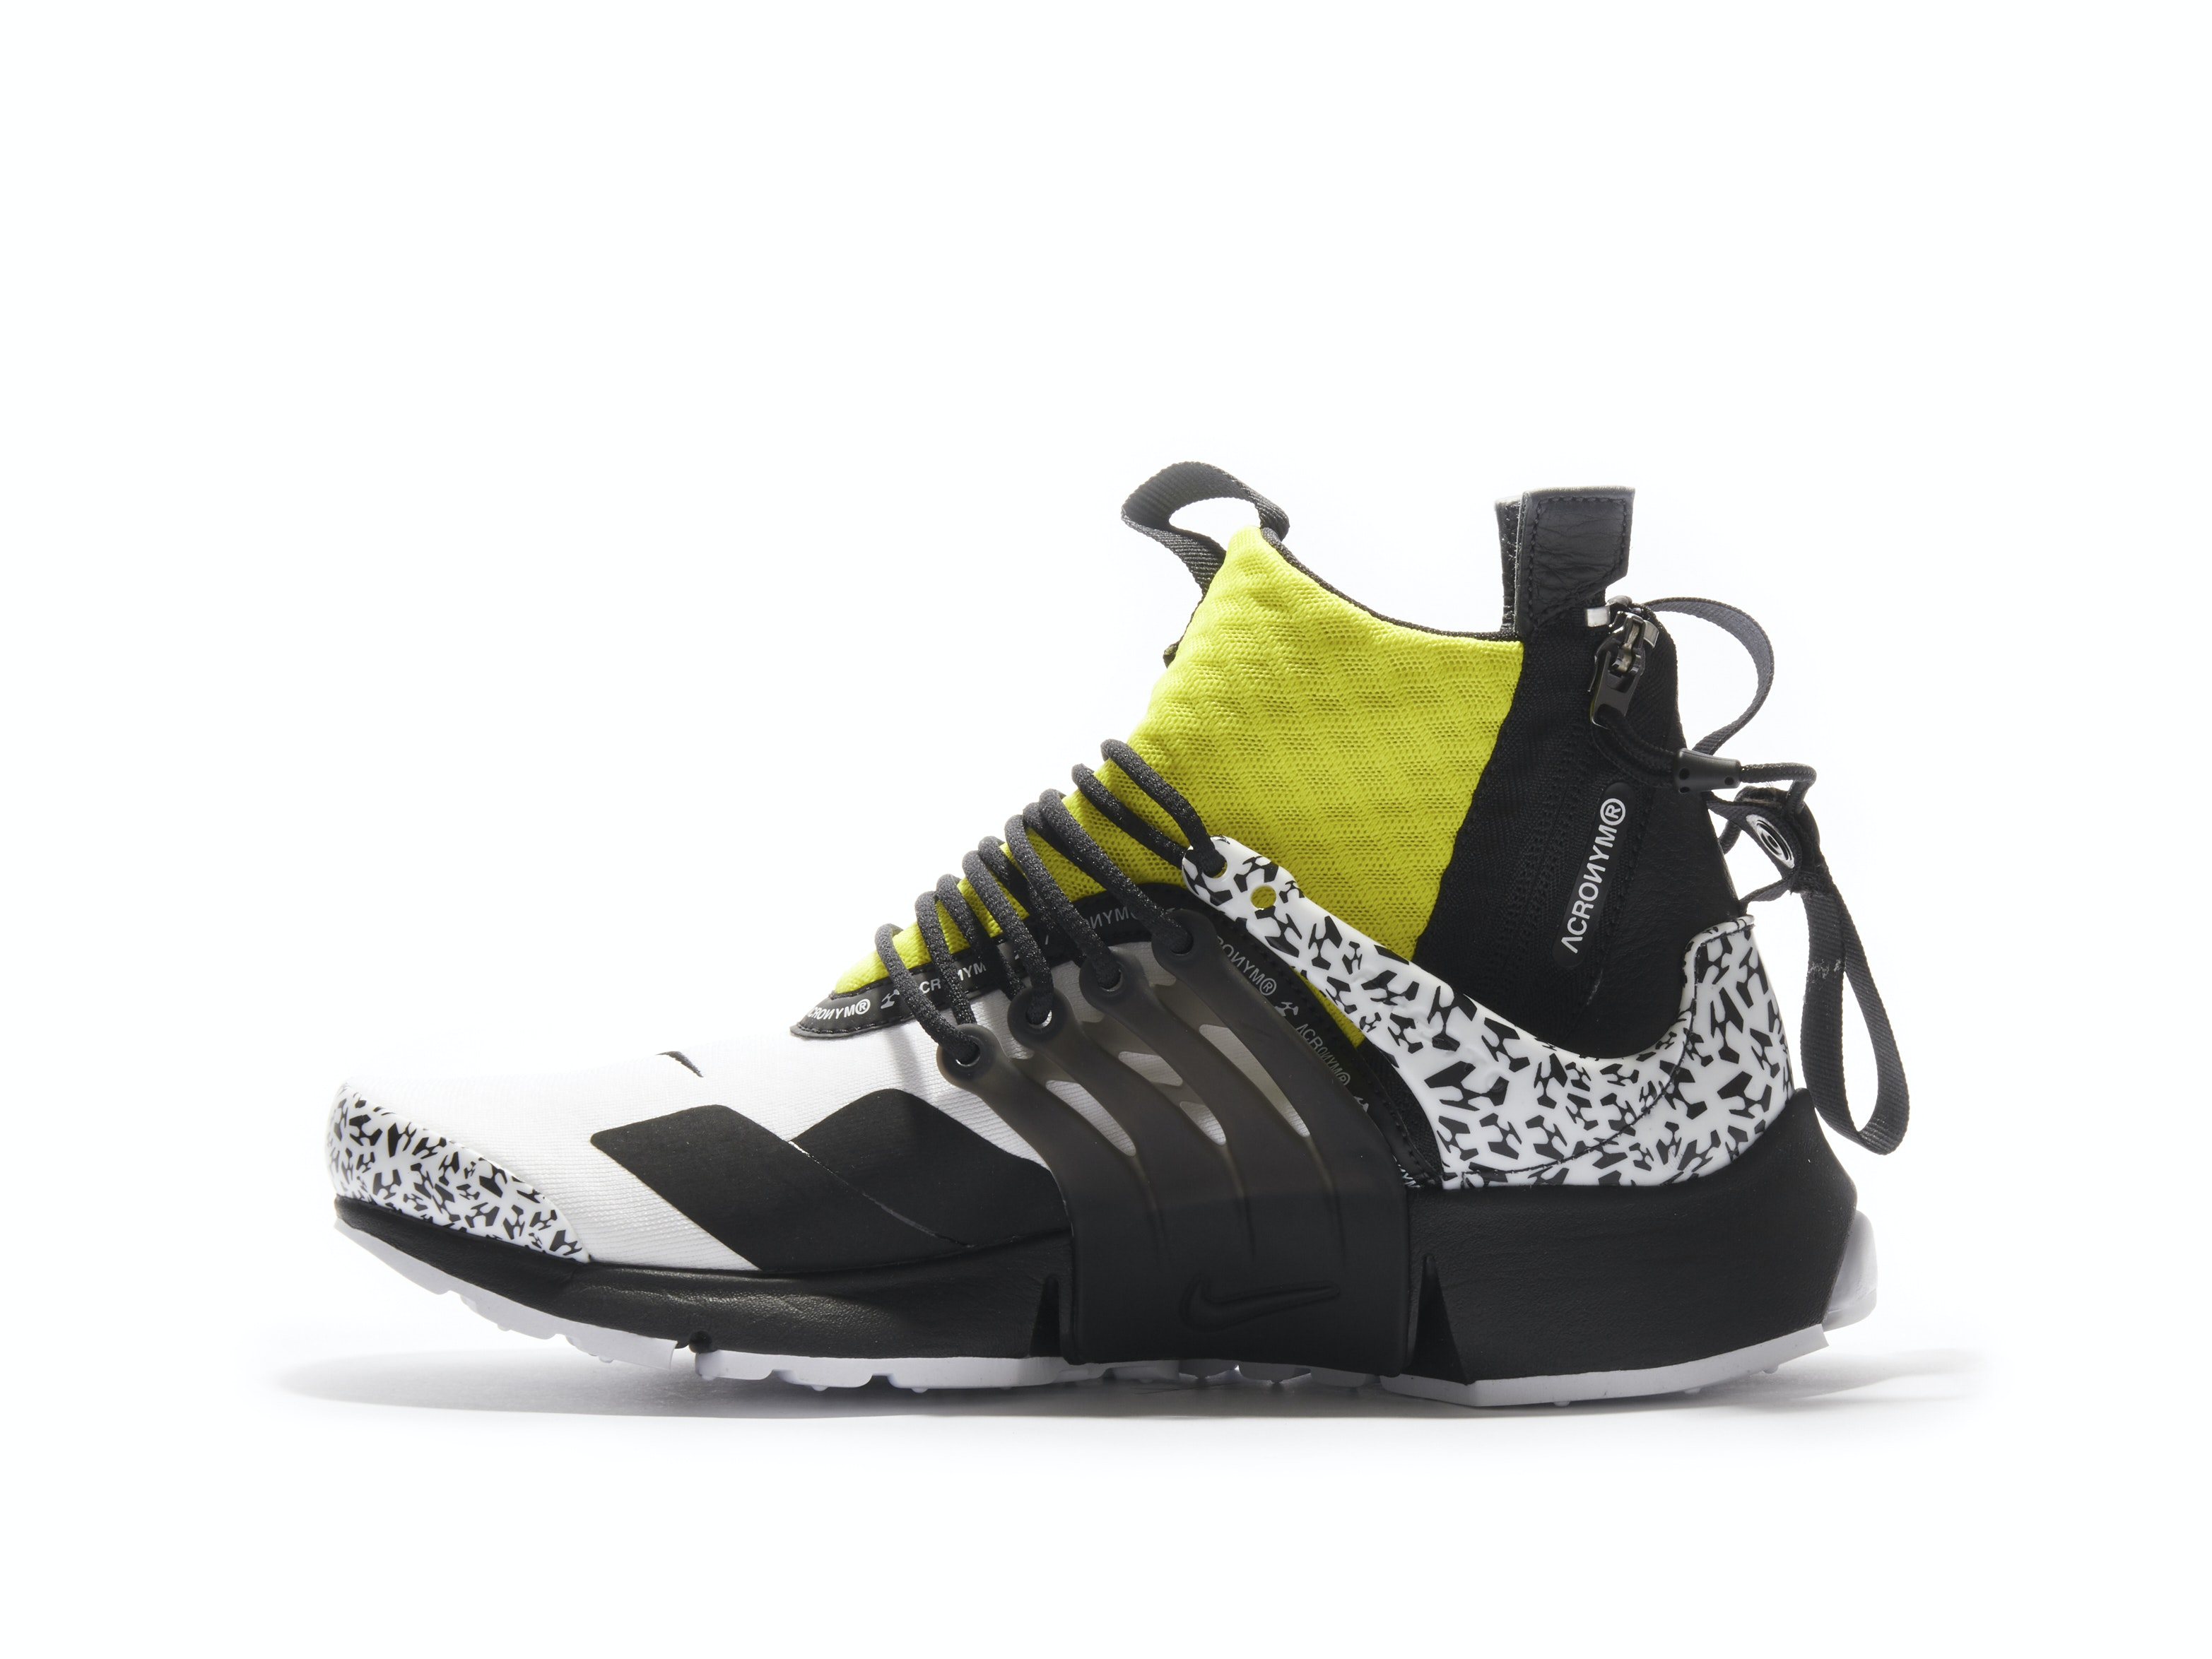 new product 23ffd 6bd8a Air Presto Mid Dynamic Yellow x Acronym. 100% AuthenticAvg Delivery Time  1-2  days. Nike   AH7832-100